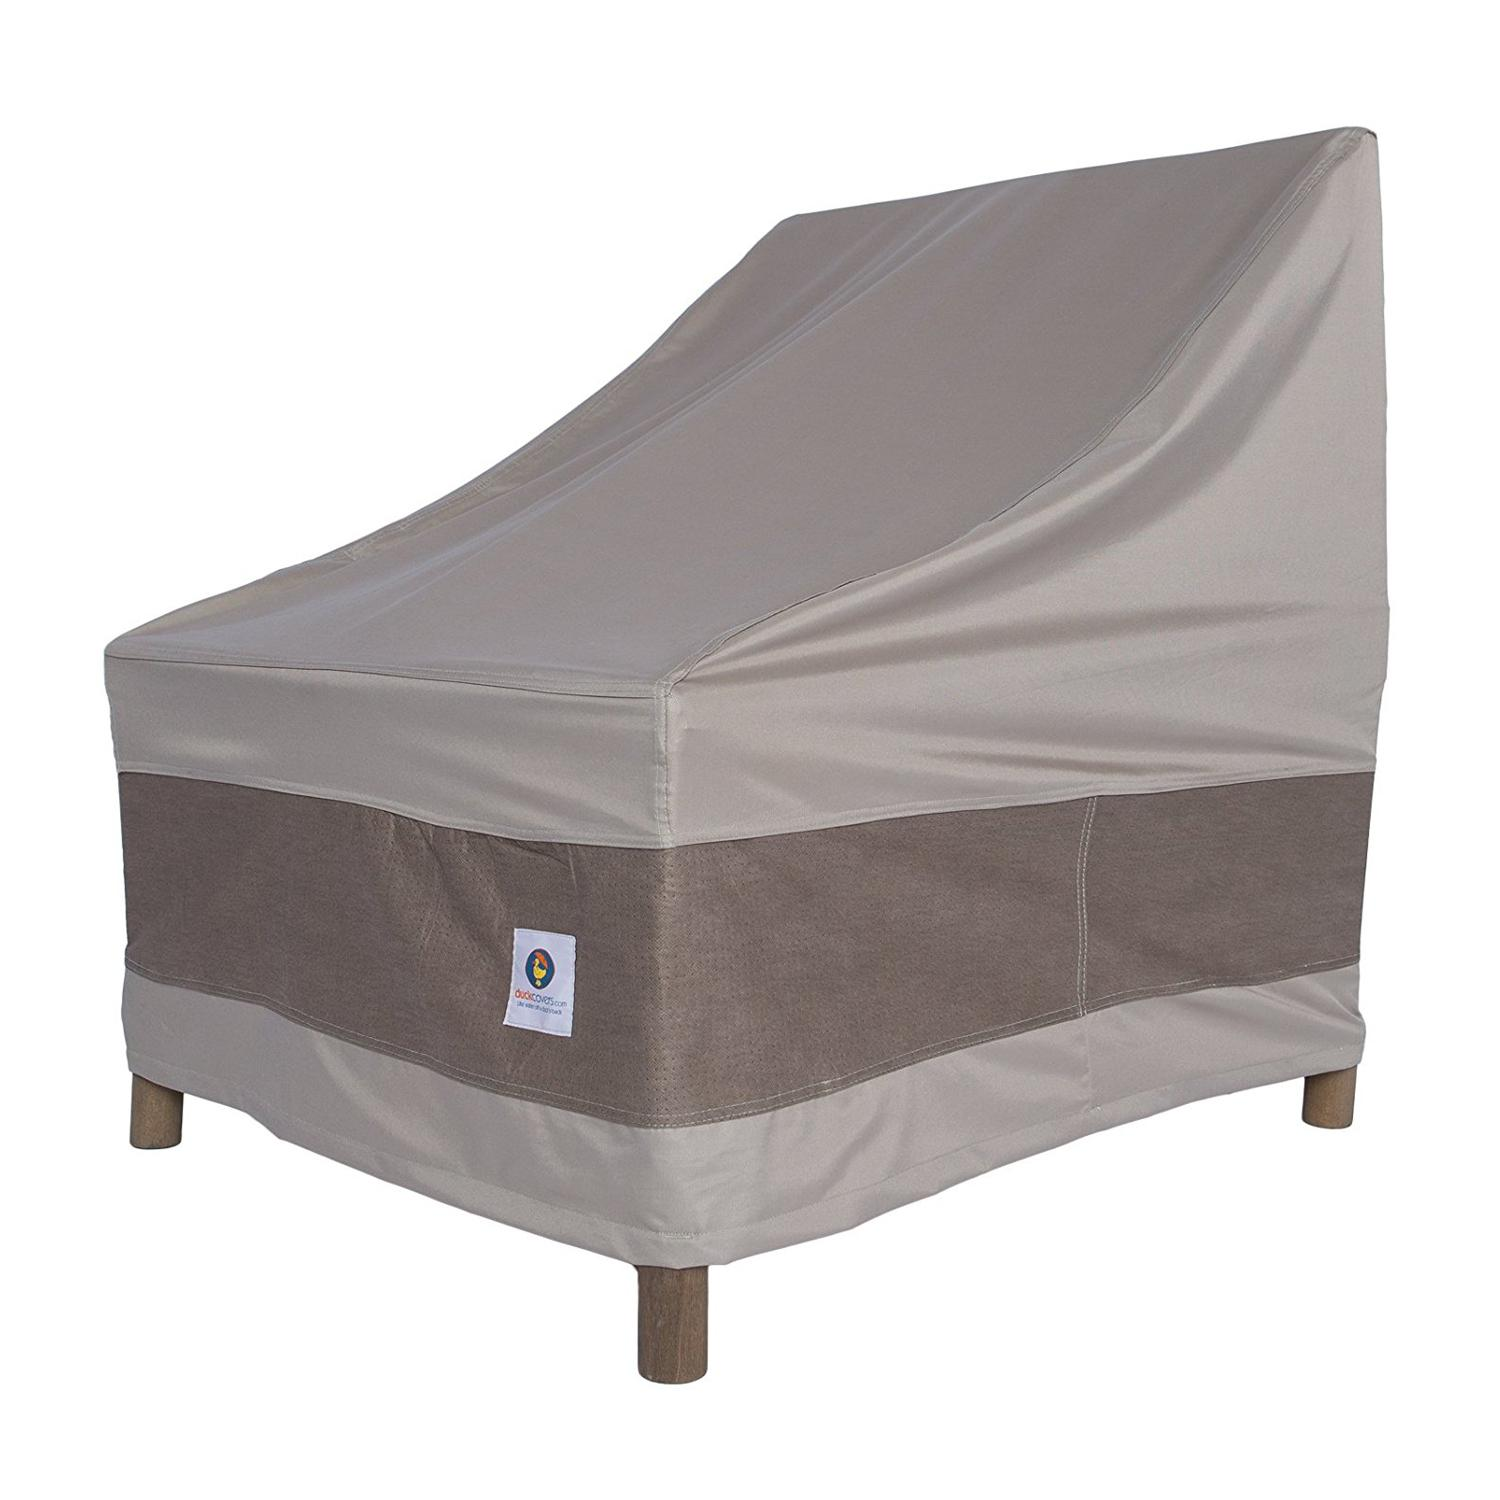 Duck covers elegant patio sofa cover 87quot w x 37quot d x 35 for Patio furniture covers amazon ca